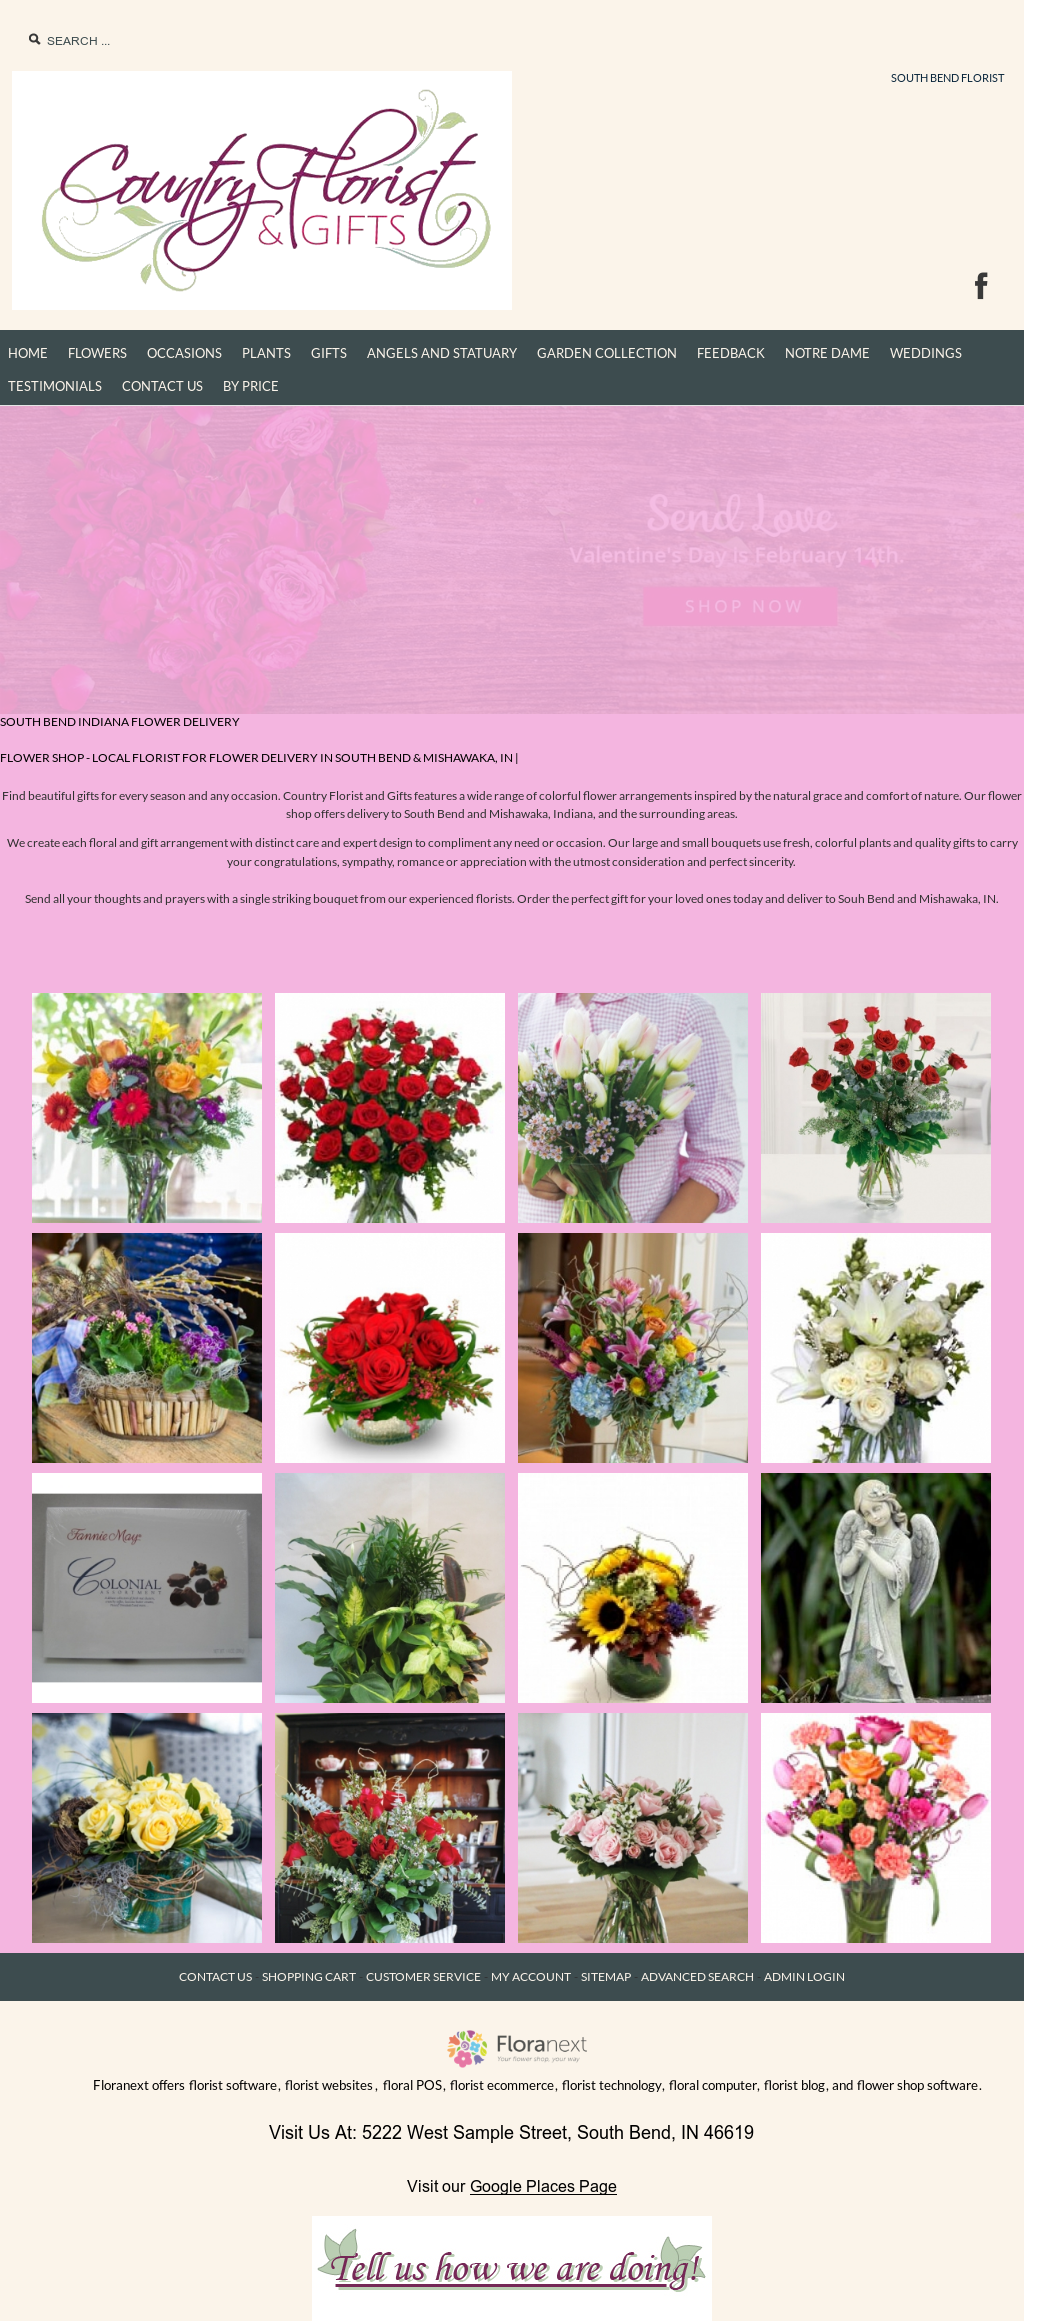 Country Florist & Gifts Competitors, Revenue and Employees - Owler Company Profile